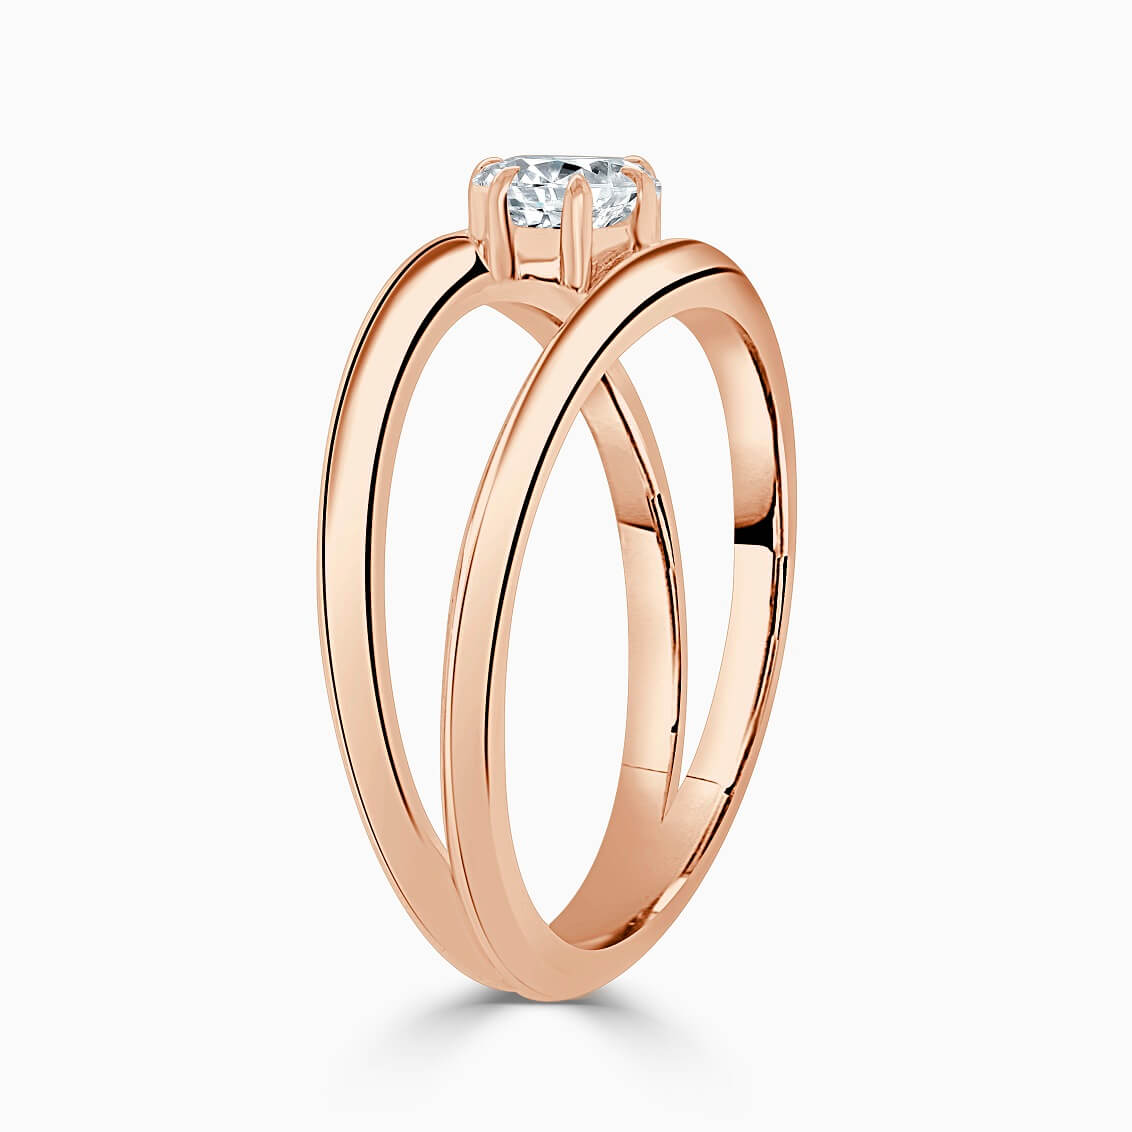 18ct Rose Gold Pear Shape 6 Claw With Double Band Engagement Ring